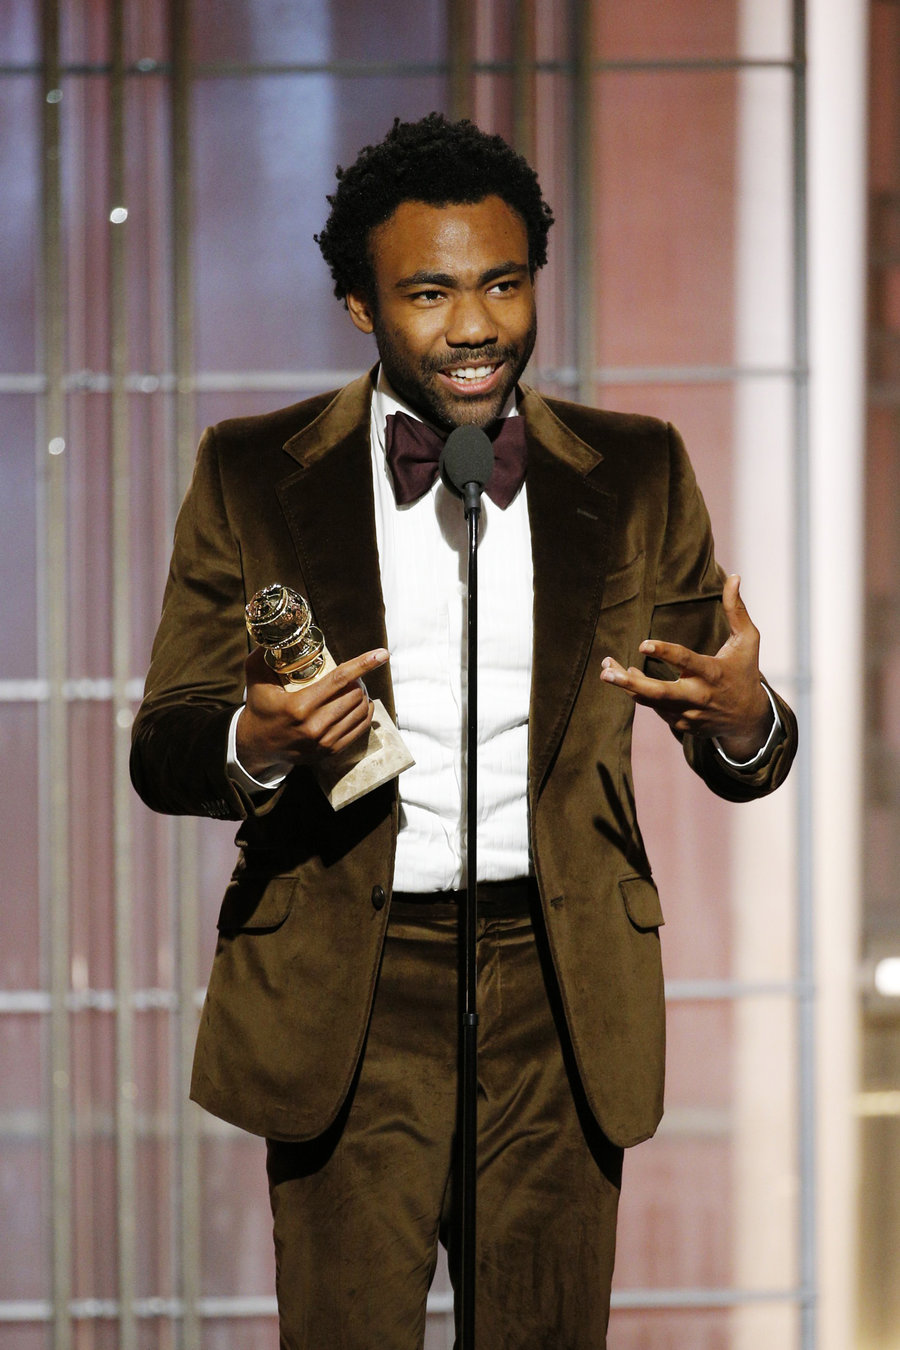 Glover accepting his Best Male Actor award.